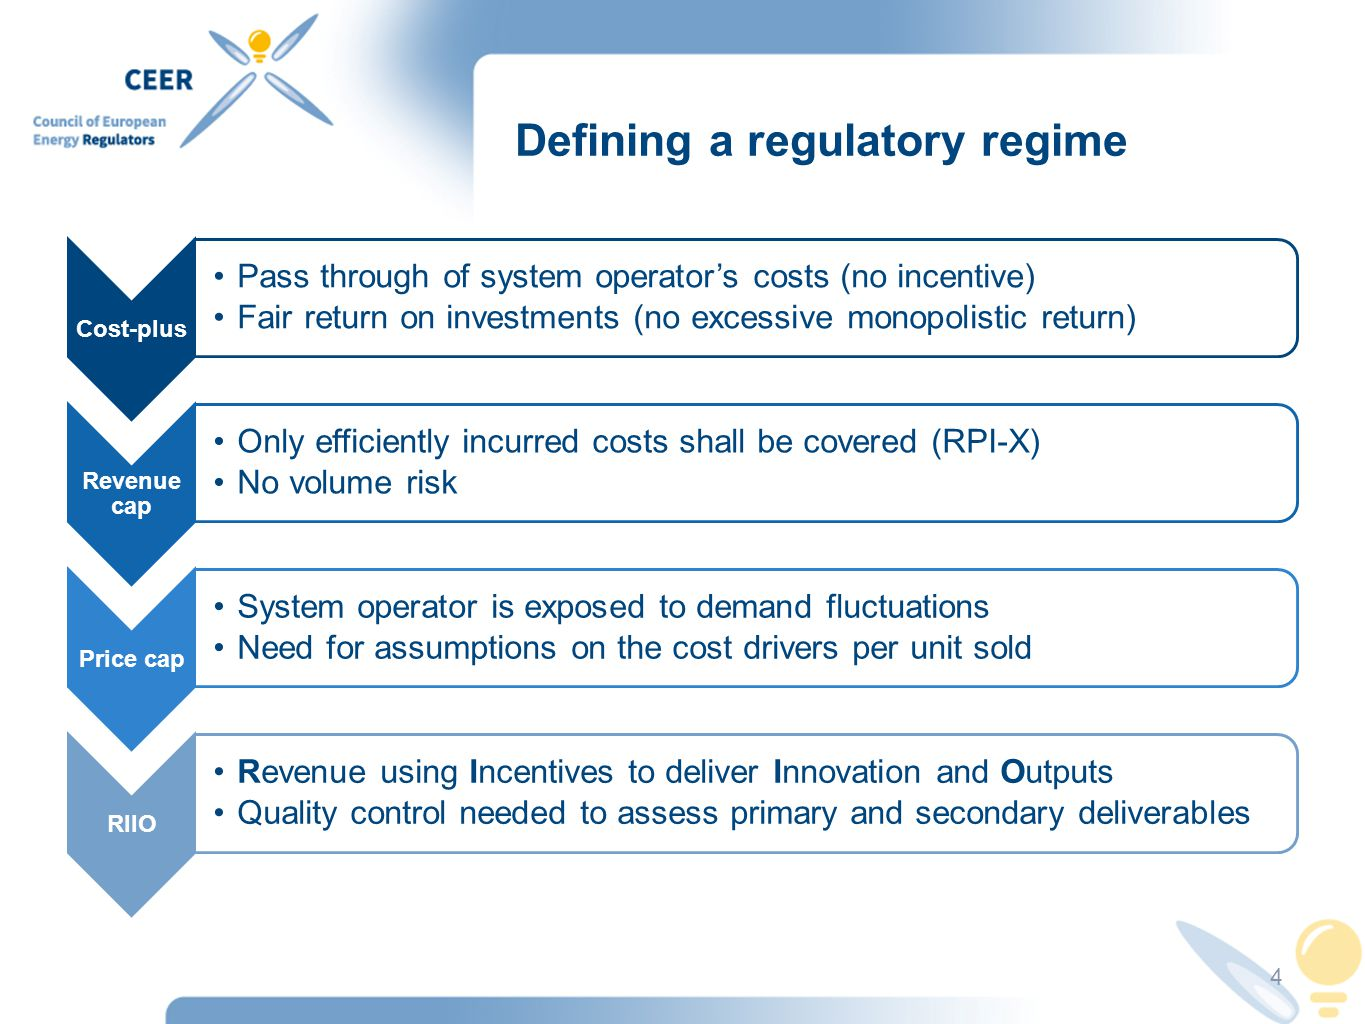 Defining a regulatory regime Cost-plus Pass through of system operator's costs (no incentive) Fair return on investments (no excessive monopolistic return) Revenue cap Only efficiently incurred costs shall be covered (RPI-X) No volume risk Price cap System operator is exposed to demand fluctuations Need for assumptions on the cost drivers per unit sold RIIO Revenue using Incentives to deliver Innovation and Outputs Quality control needed to assess primary and secondary deliverables 4